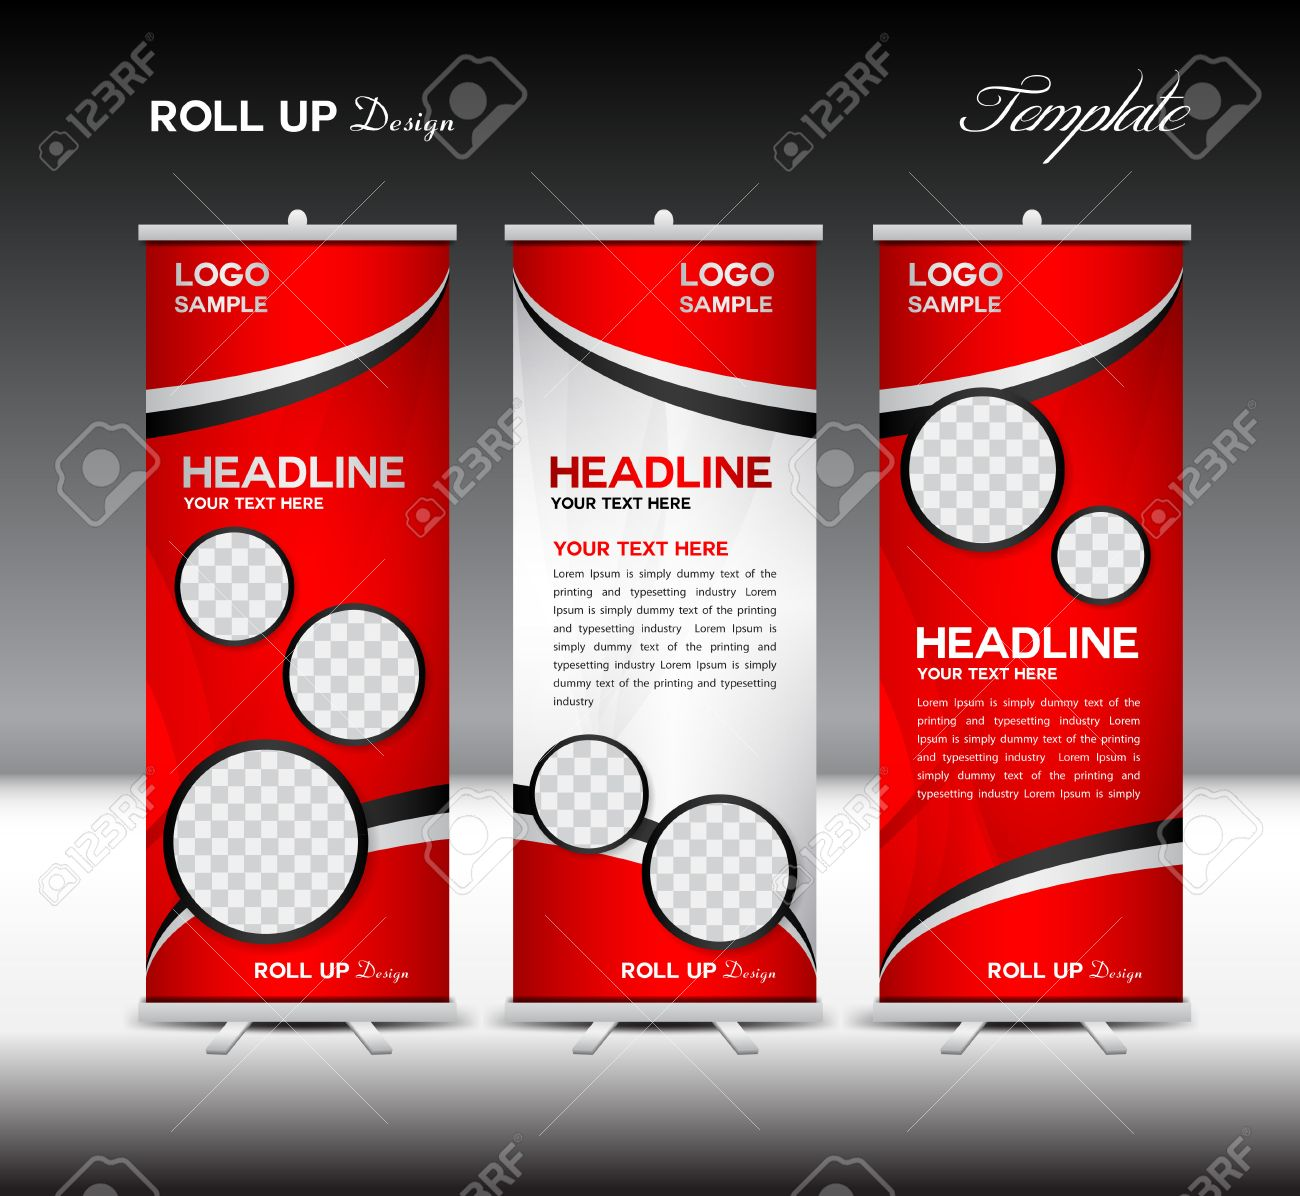 Red Roll Up Banner Template Vector Illustration, Roll Up Stand ...